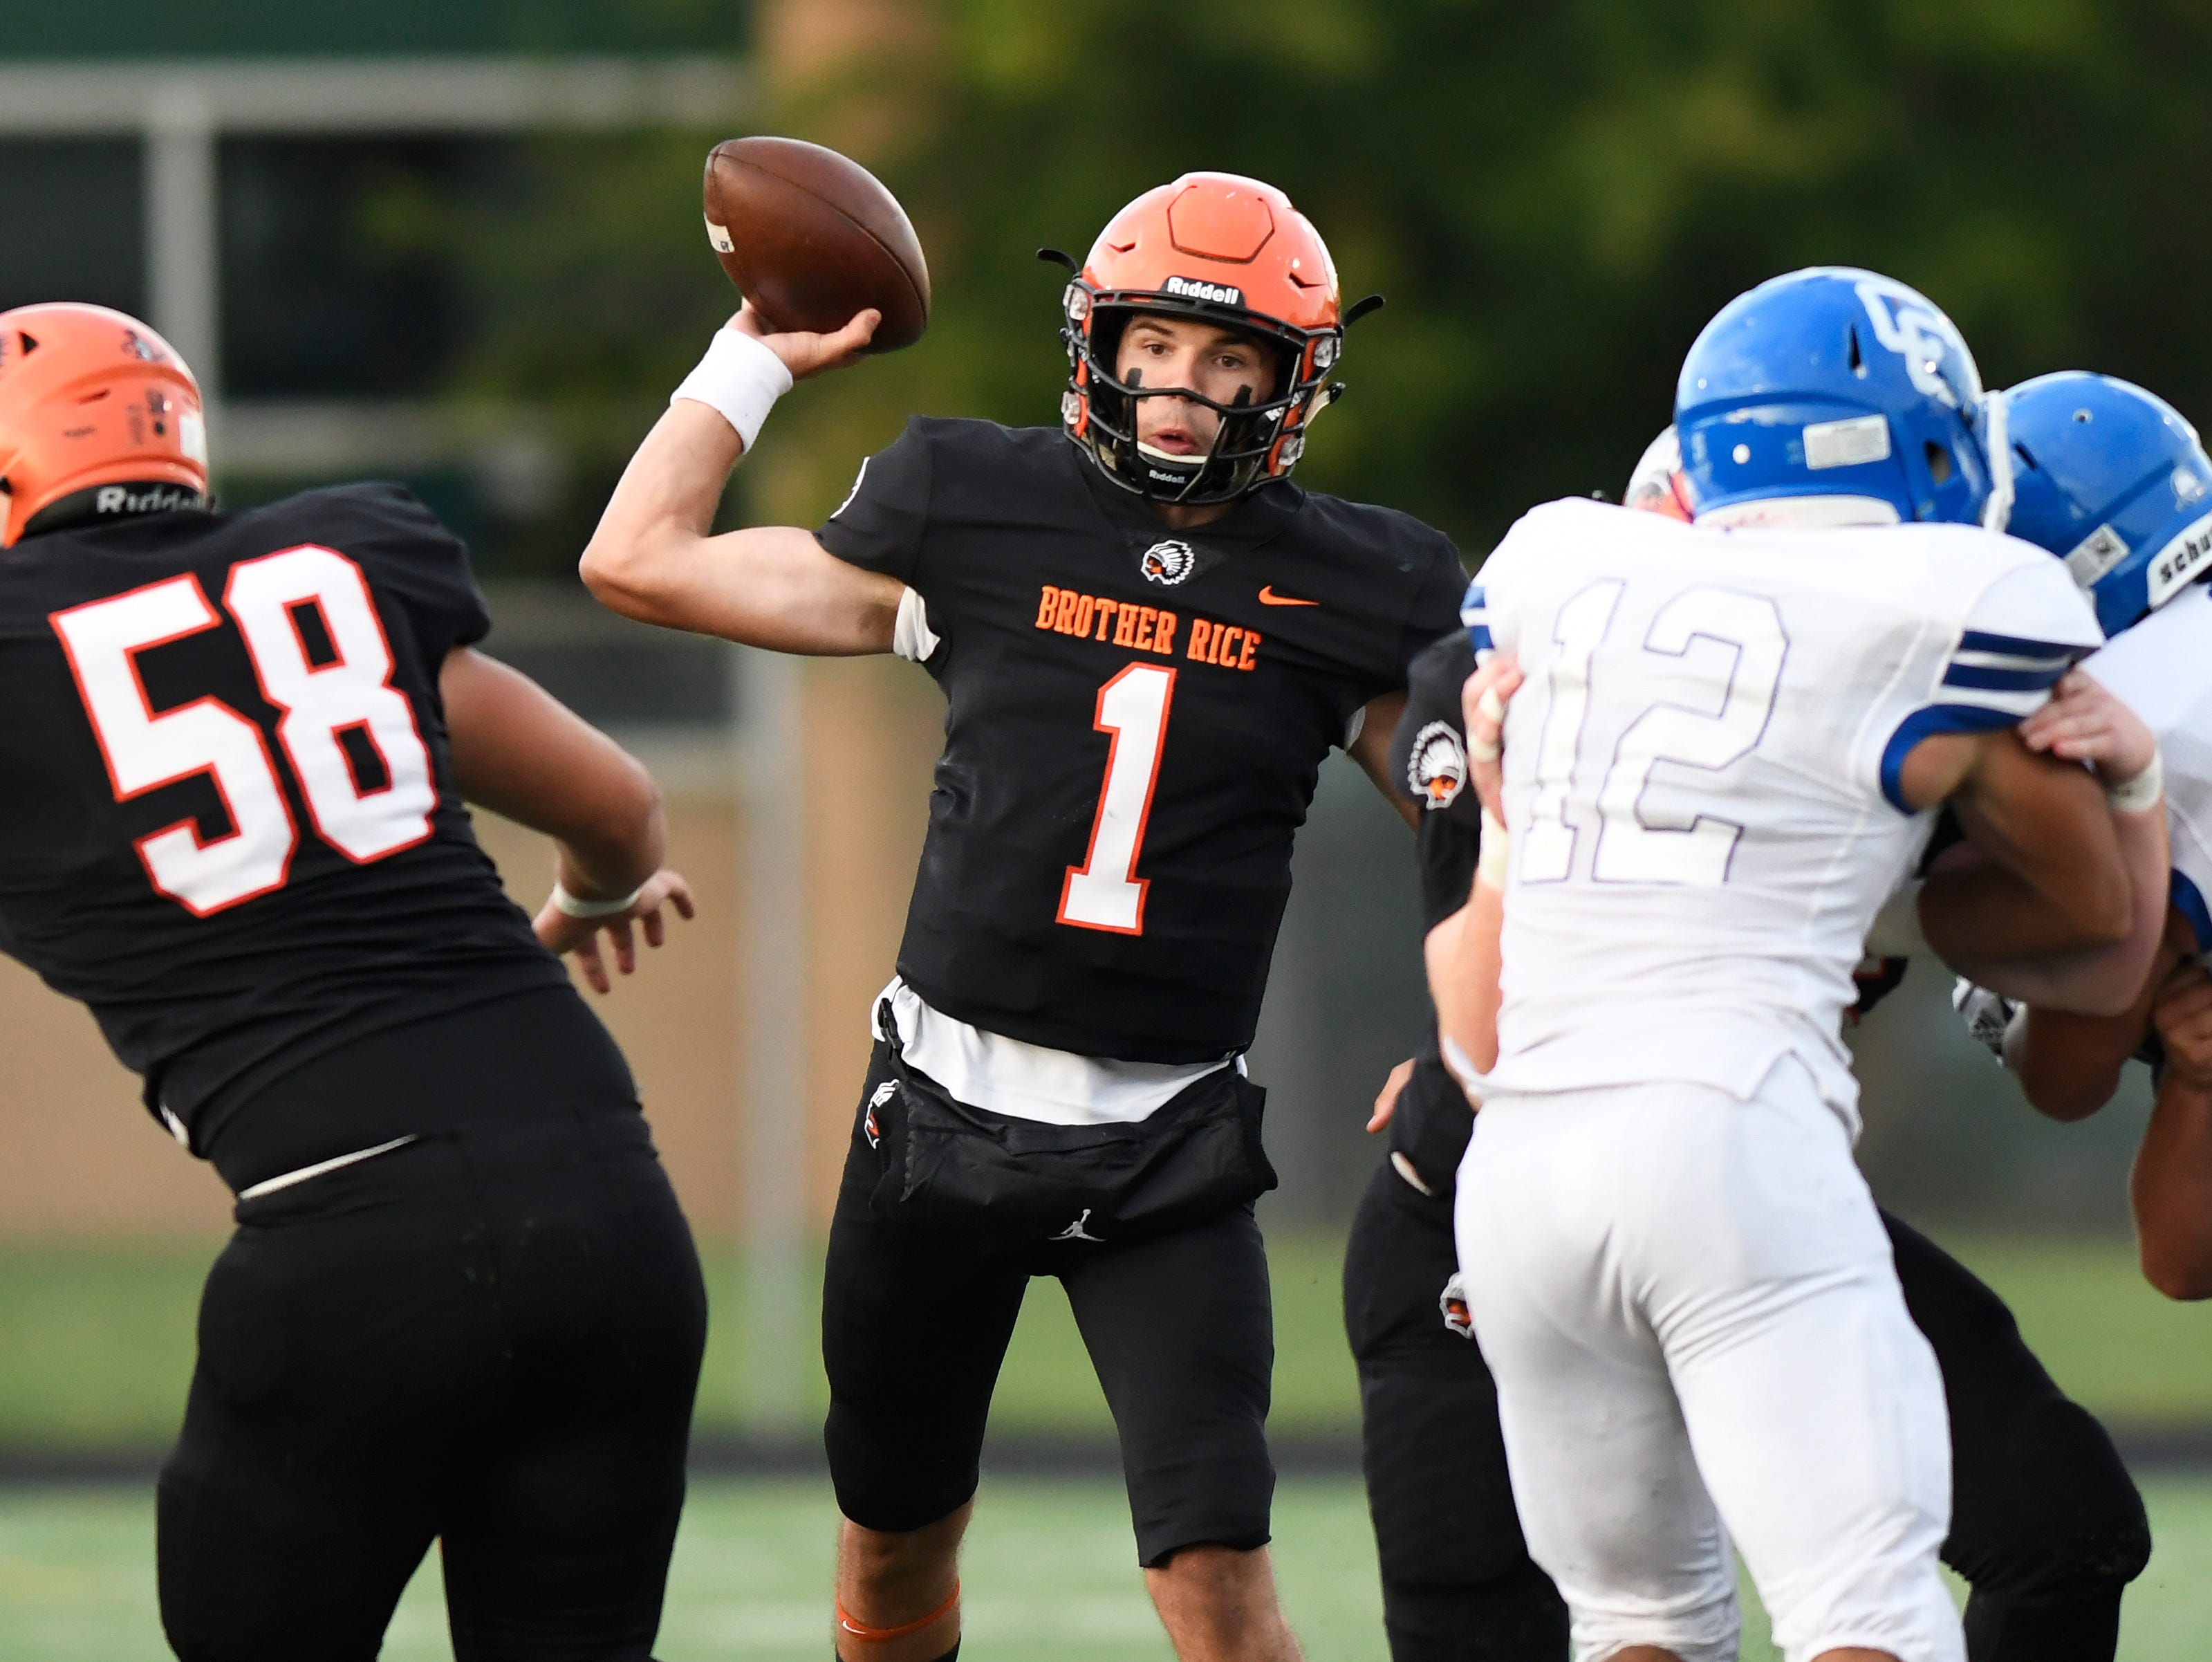 Birmingham Brother Rice QB/CB Greg Piscopink (1) passes against Detroit Catholic Central in the first quarter, Saturday, Sept. 22, 2018 at Hurley Field in Berkley, Mich.  Catholic Central defeated Brother Rice, 21-0.  (Jose Juarez/Hometown Life)